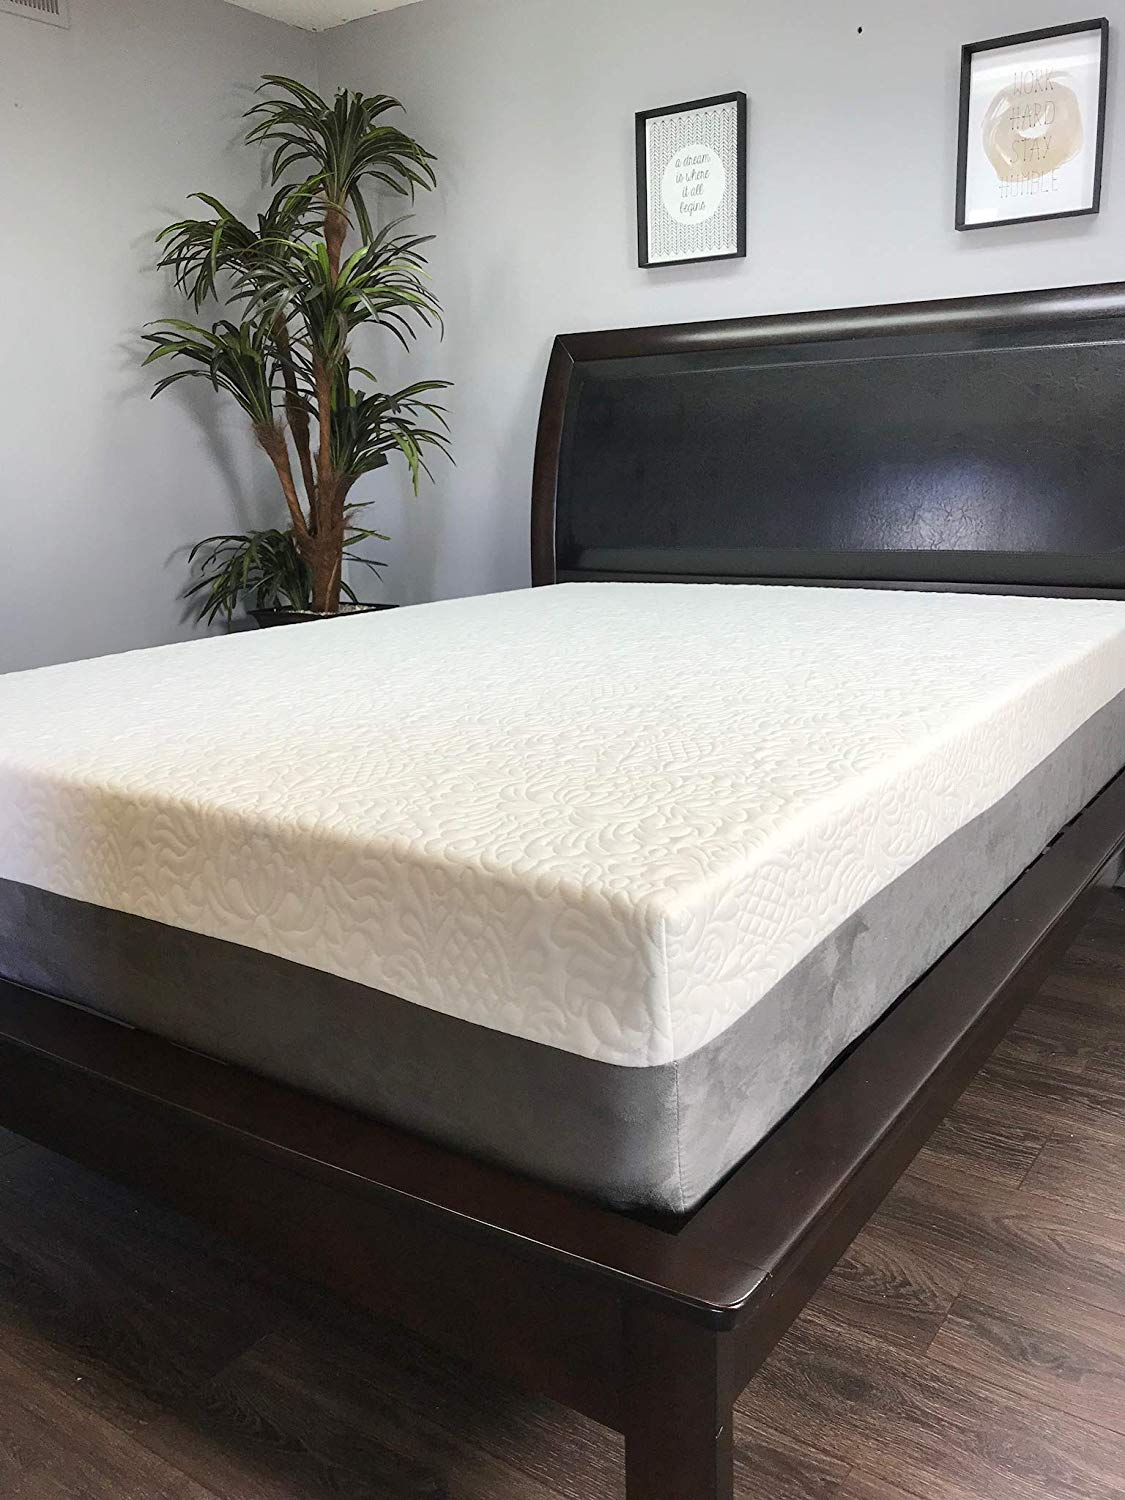 American Mattress Company - 12in Gel Infused Memory Foam Mattress - 100% Made in USA - 20 Year Warranty - CertiPur Foam (Full) - Chiropractic Endorsed